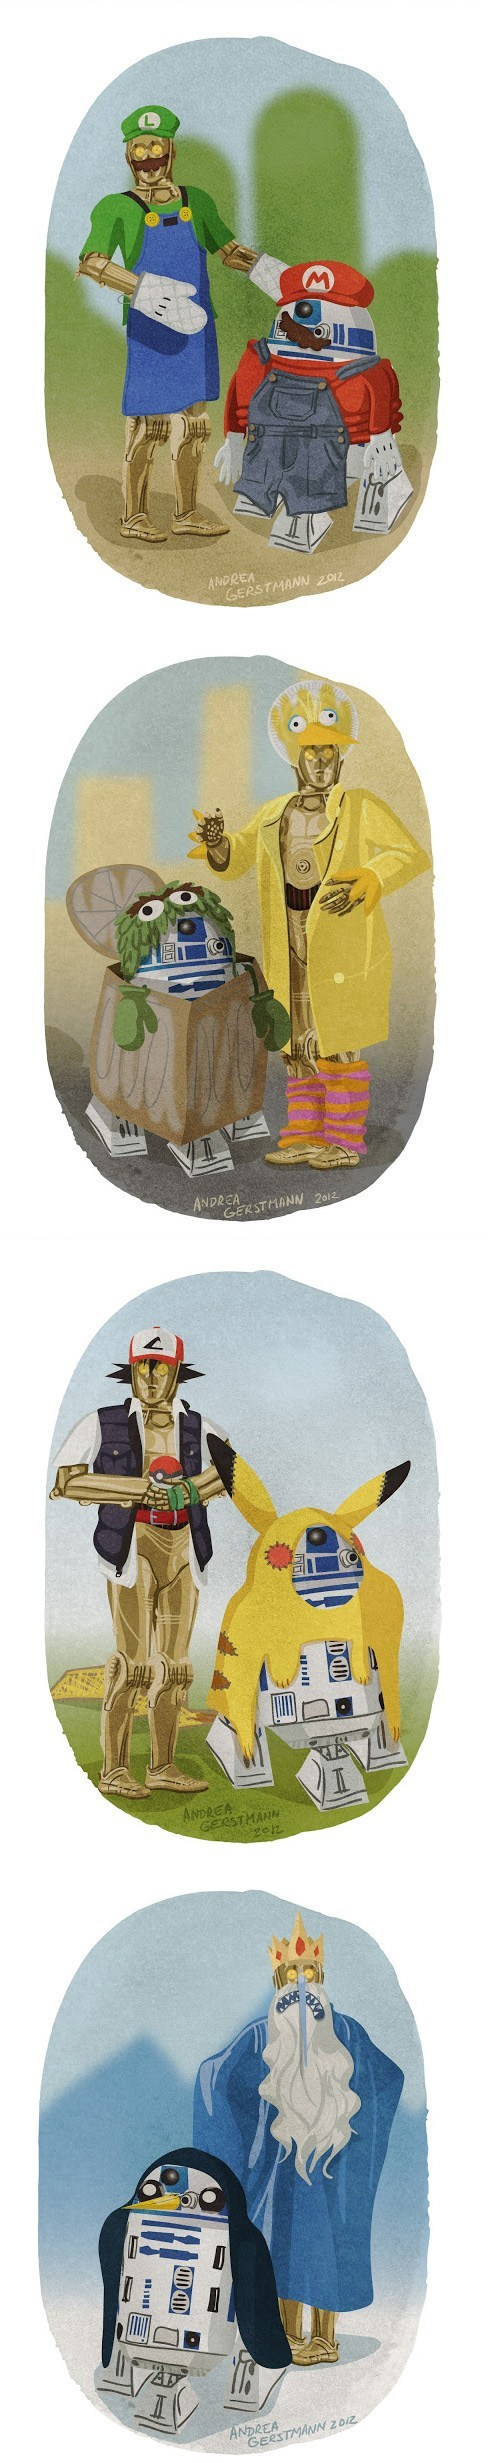 costume,Fan Art,halloween,c3p0,droids,mario,luigi,big bird,adventure time,Pokémon,star wars,oscar the grouch,ghoulish geeks,g rated,video games